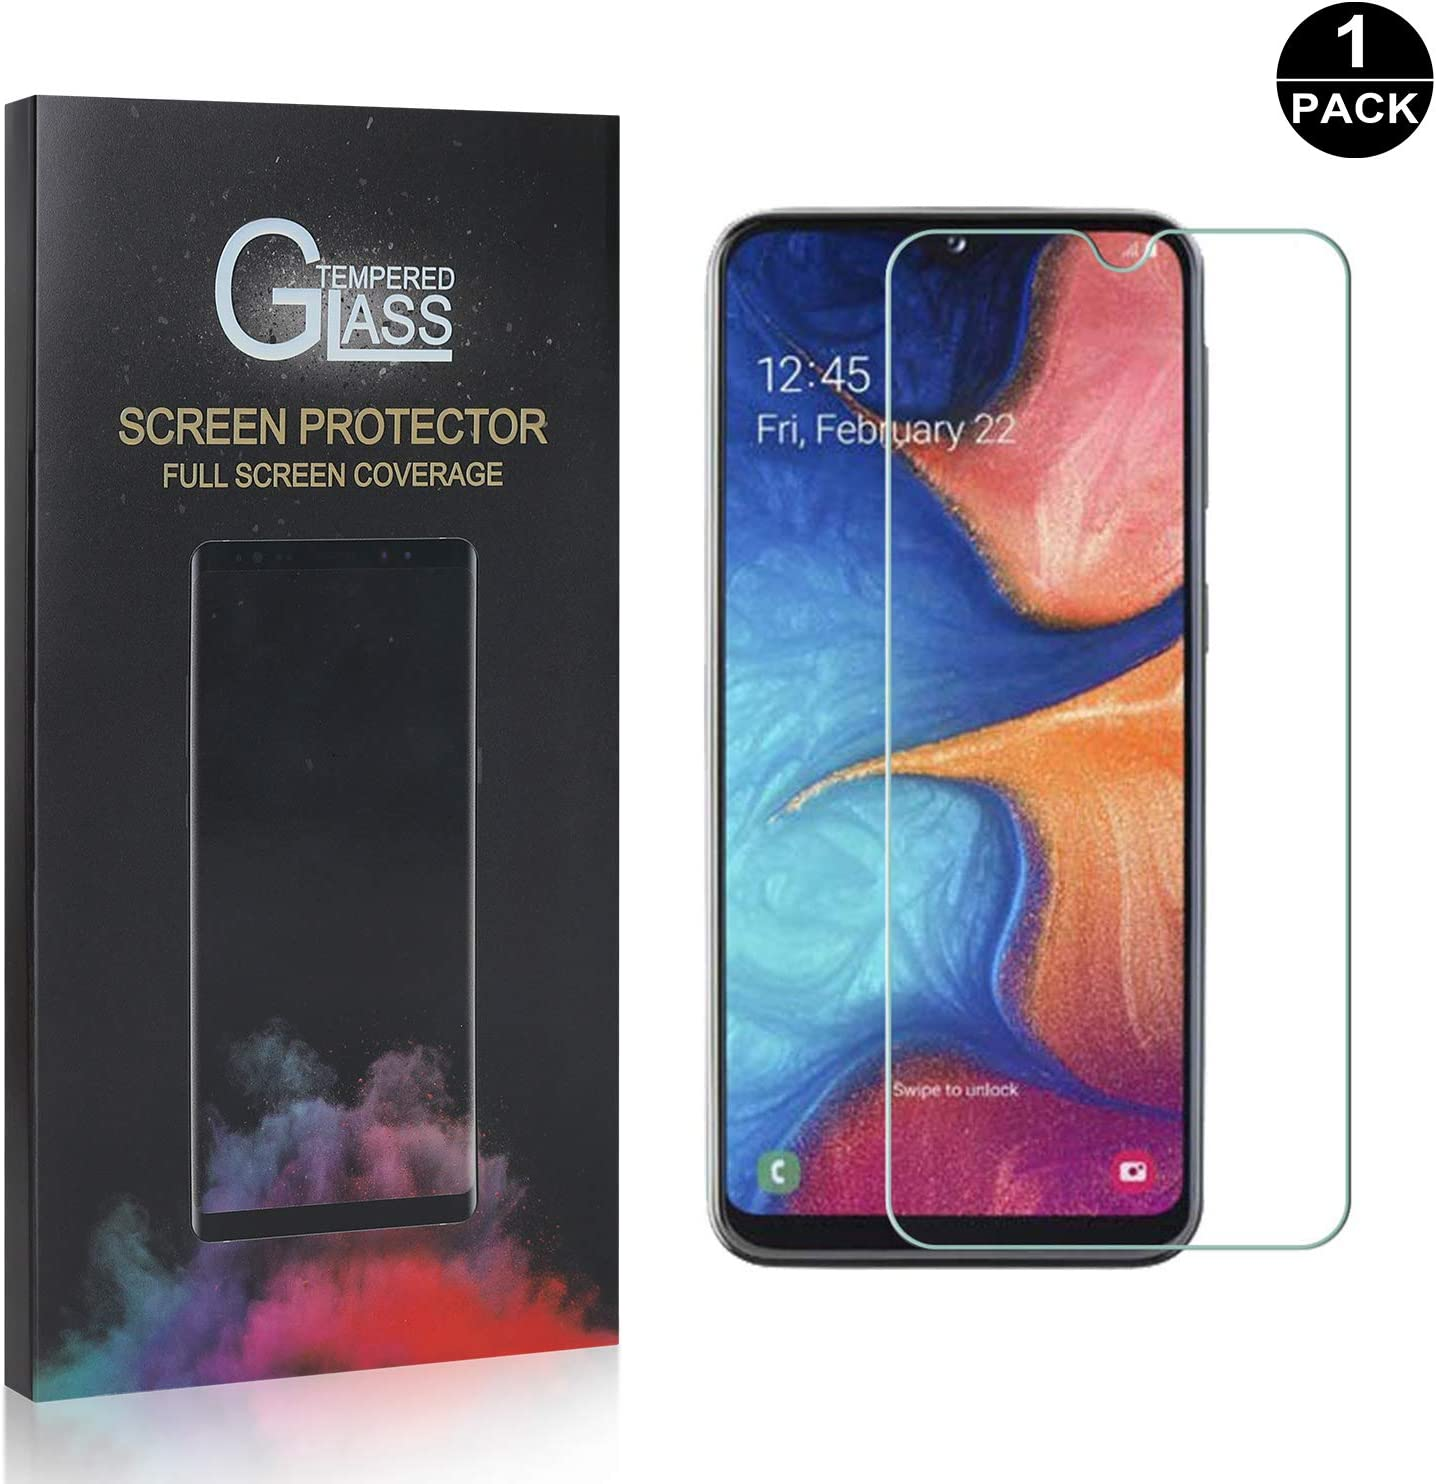 Anti Scratch Anti Bubble 9H Hardness Tempered Glass for Samsung Galaxy A20 // Galaxy A30 SONWO Glass Screen Protector Screen Protector Compatible with Galaxy A20 // Galaxy A30 1 Pack